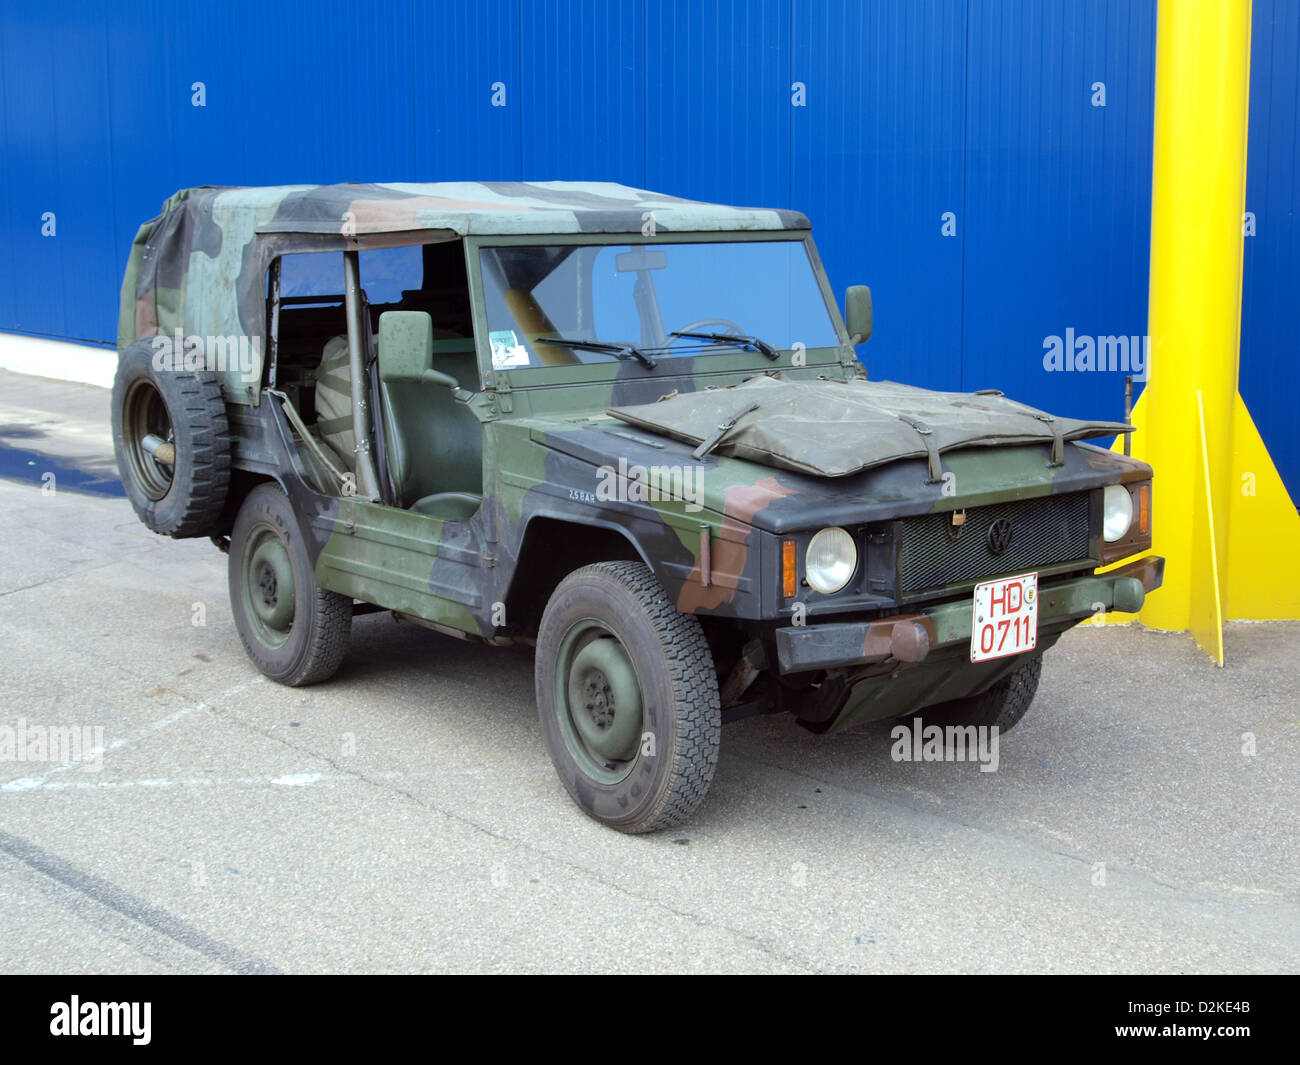 VW military jeep - Stock Image